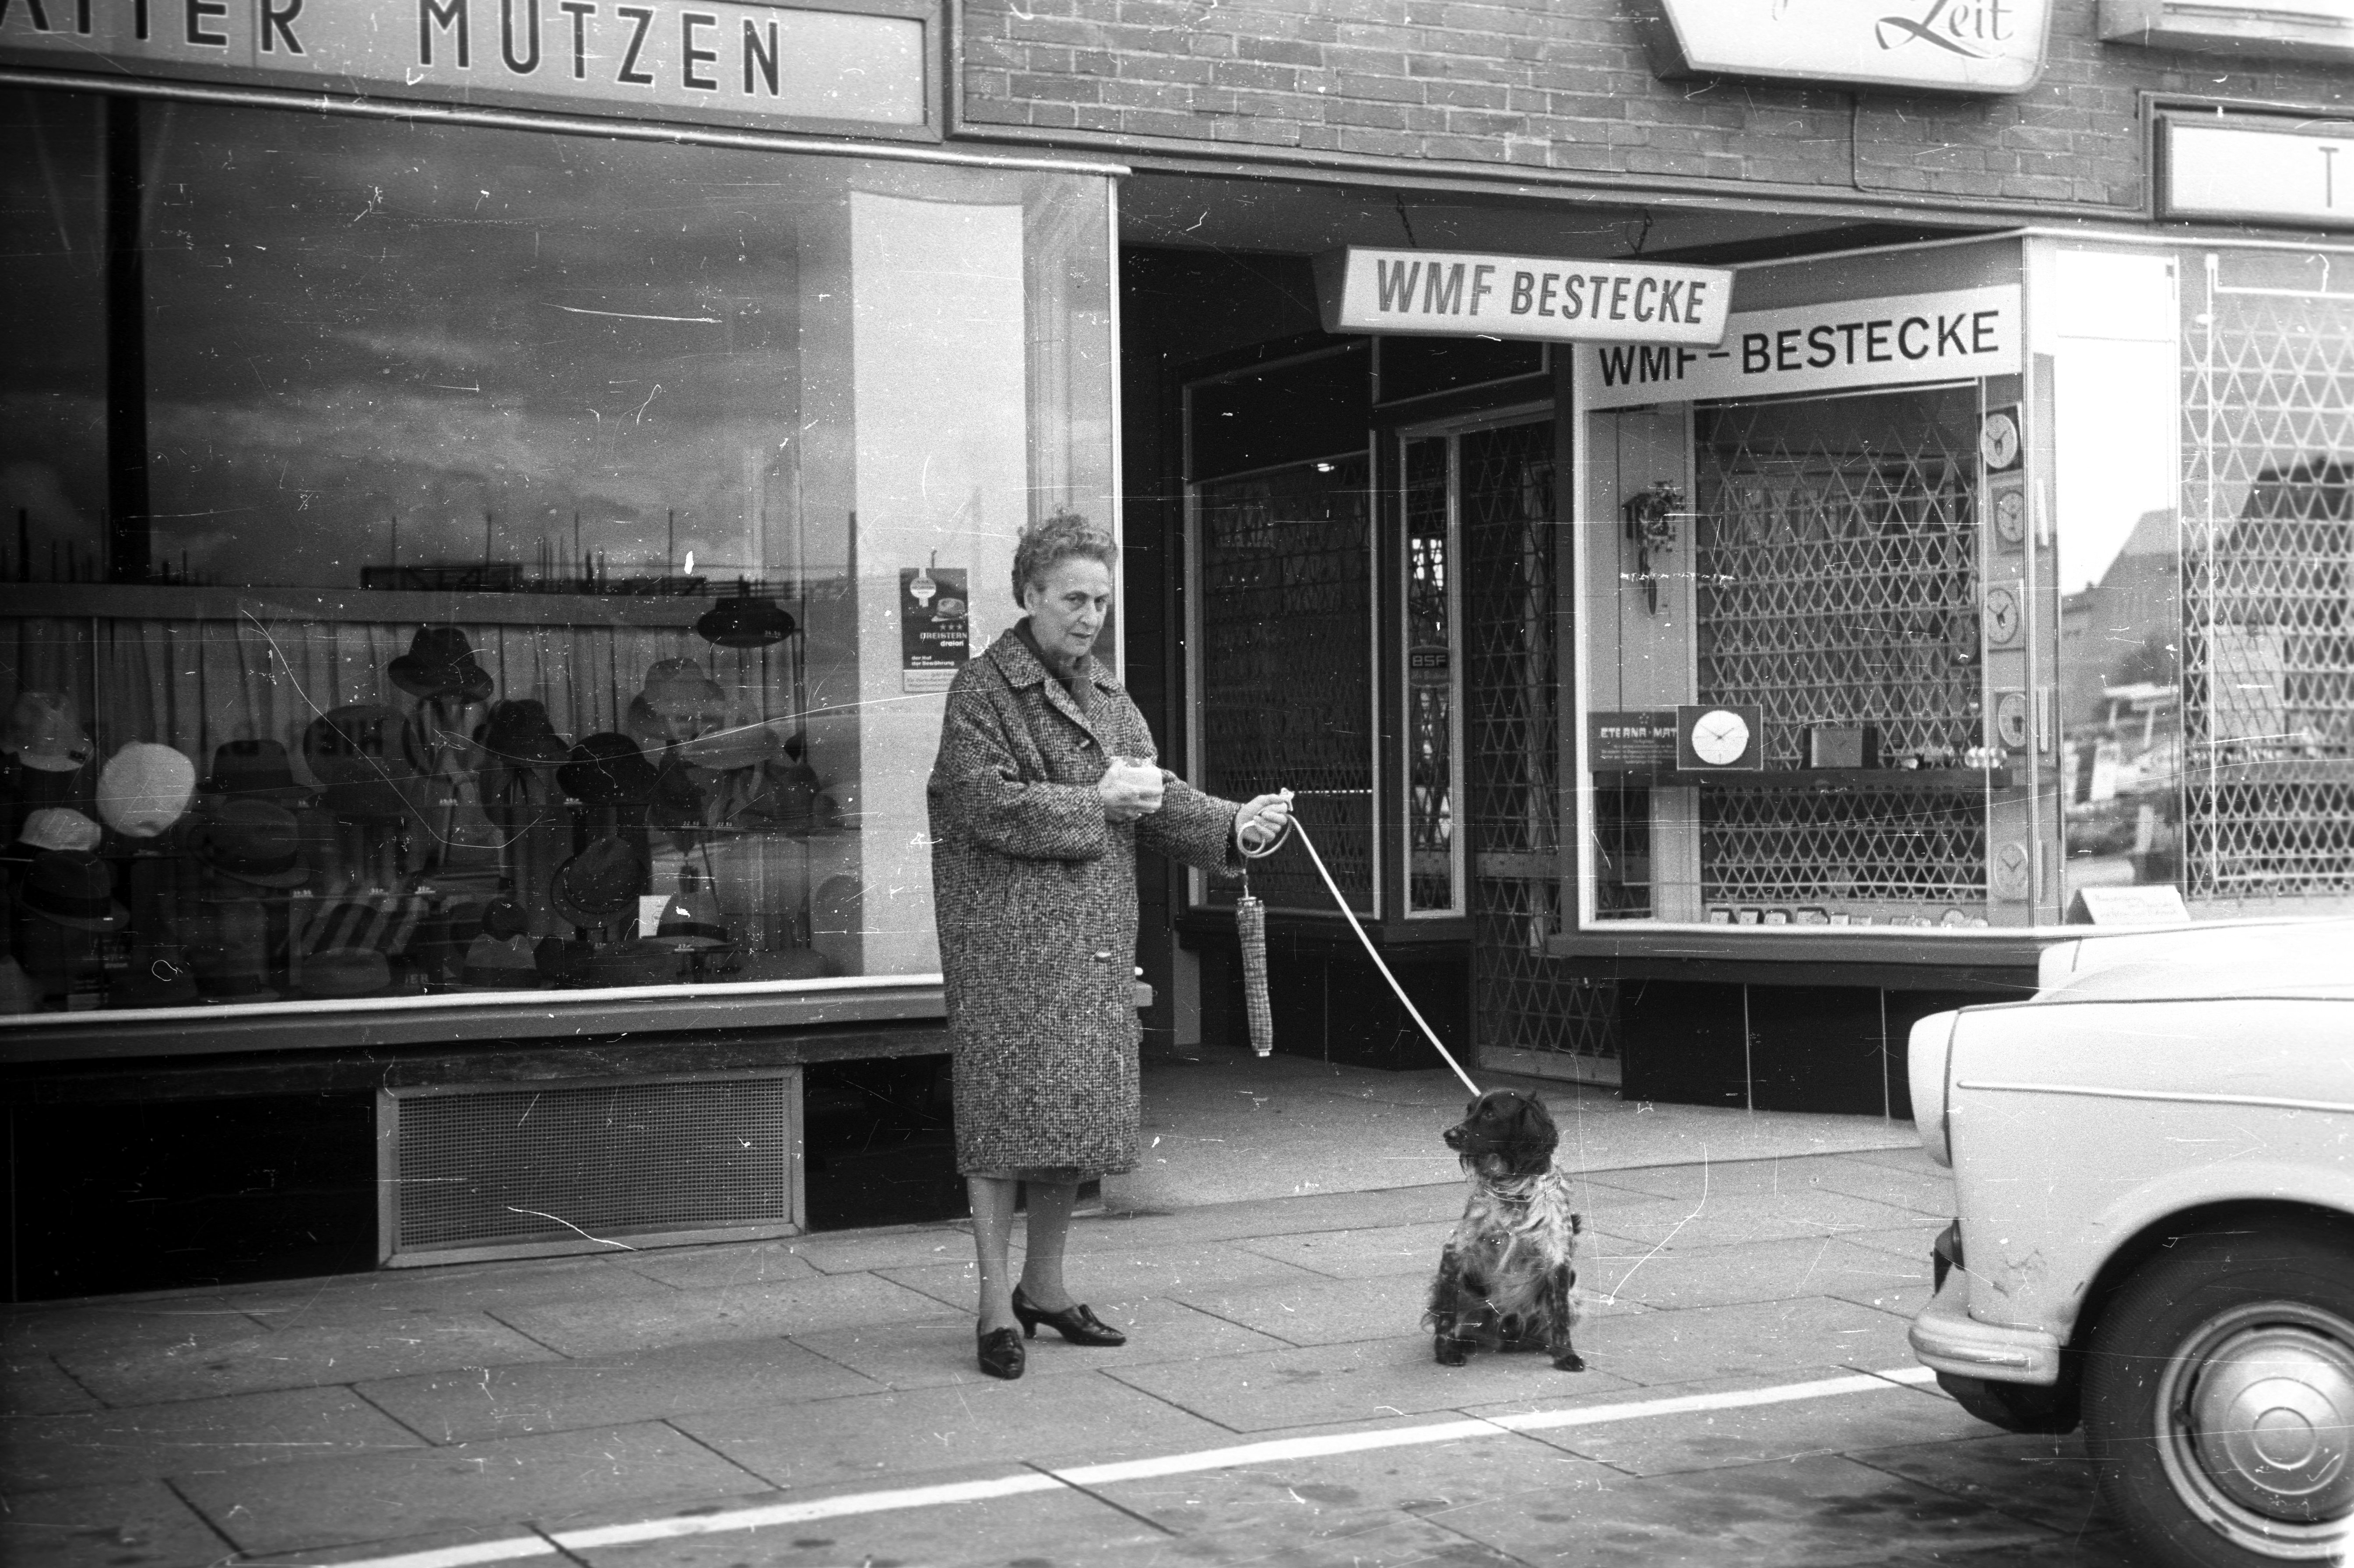 A black and white image of an older lady with her spaniel, in front of a rank of shops on Hamburger Strasse in Hamburg, 1965, featuring cutlery and men's hats